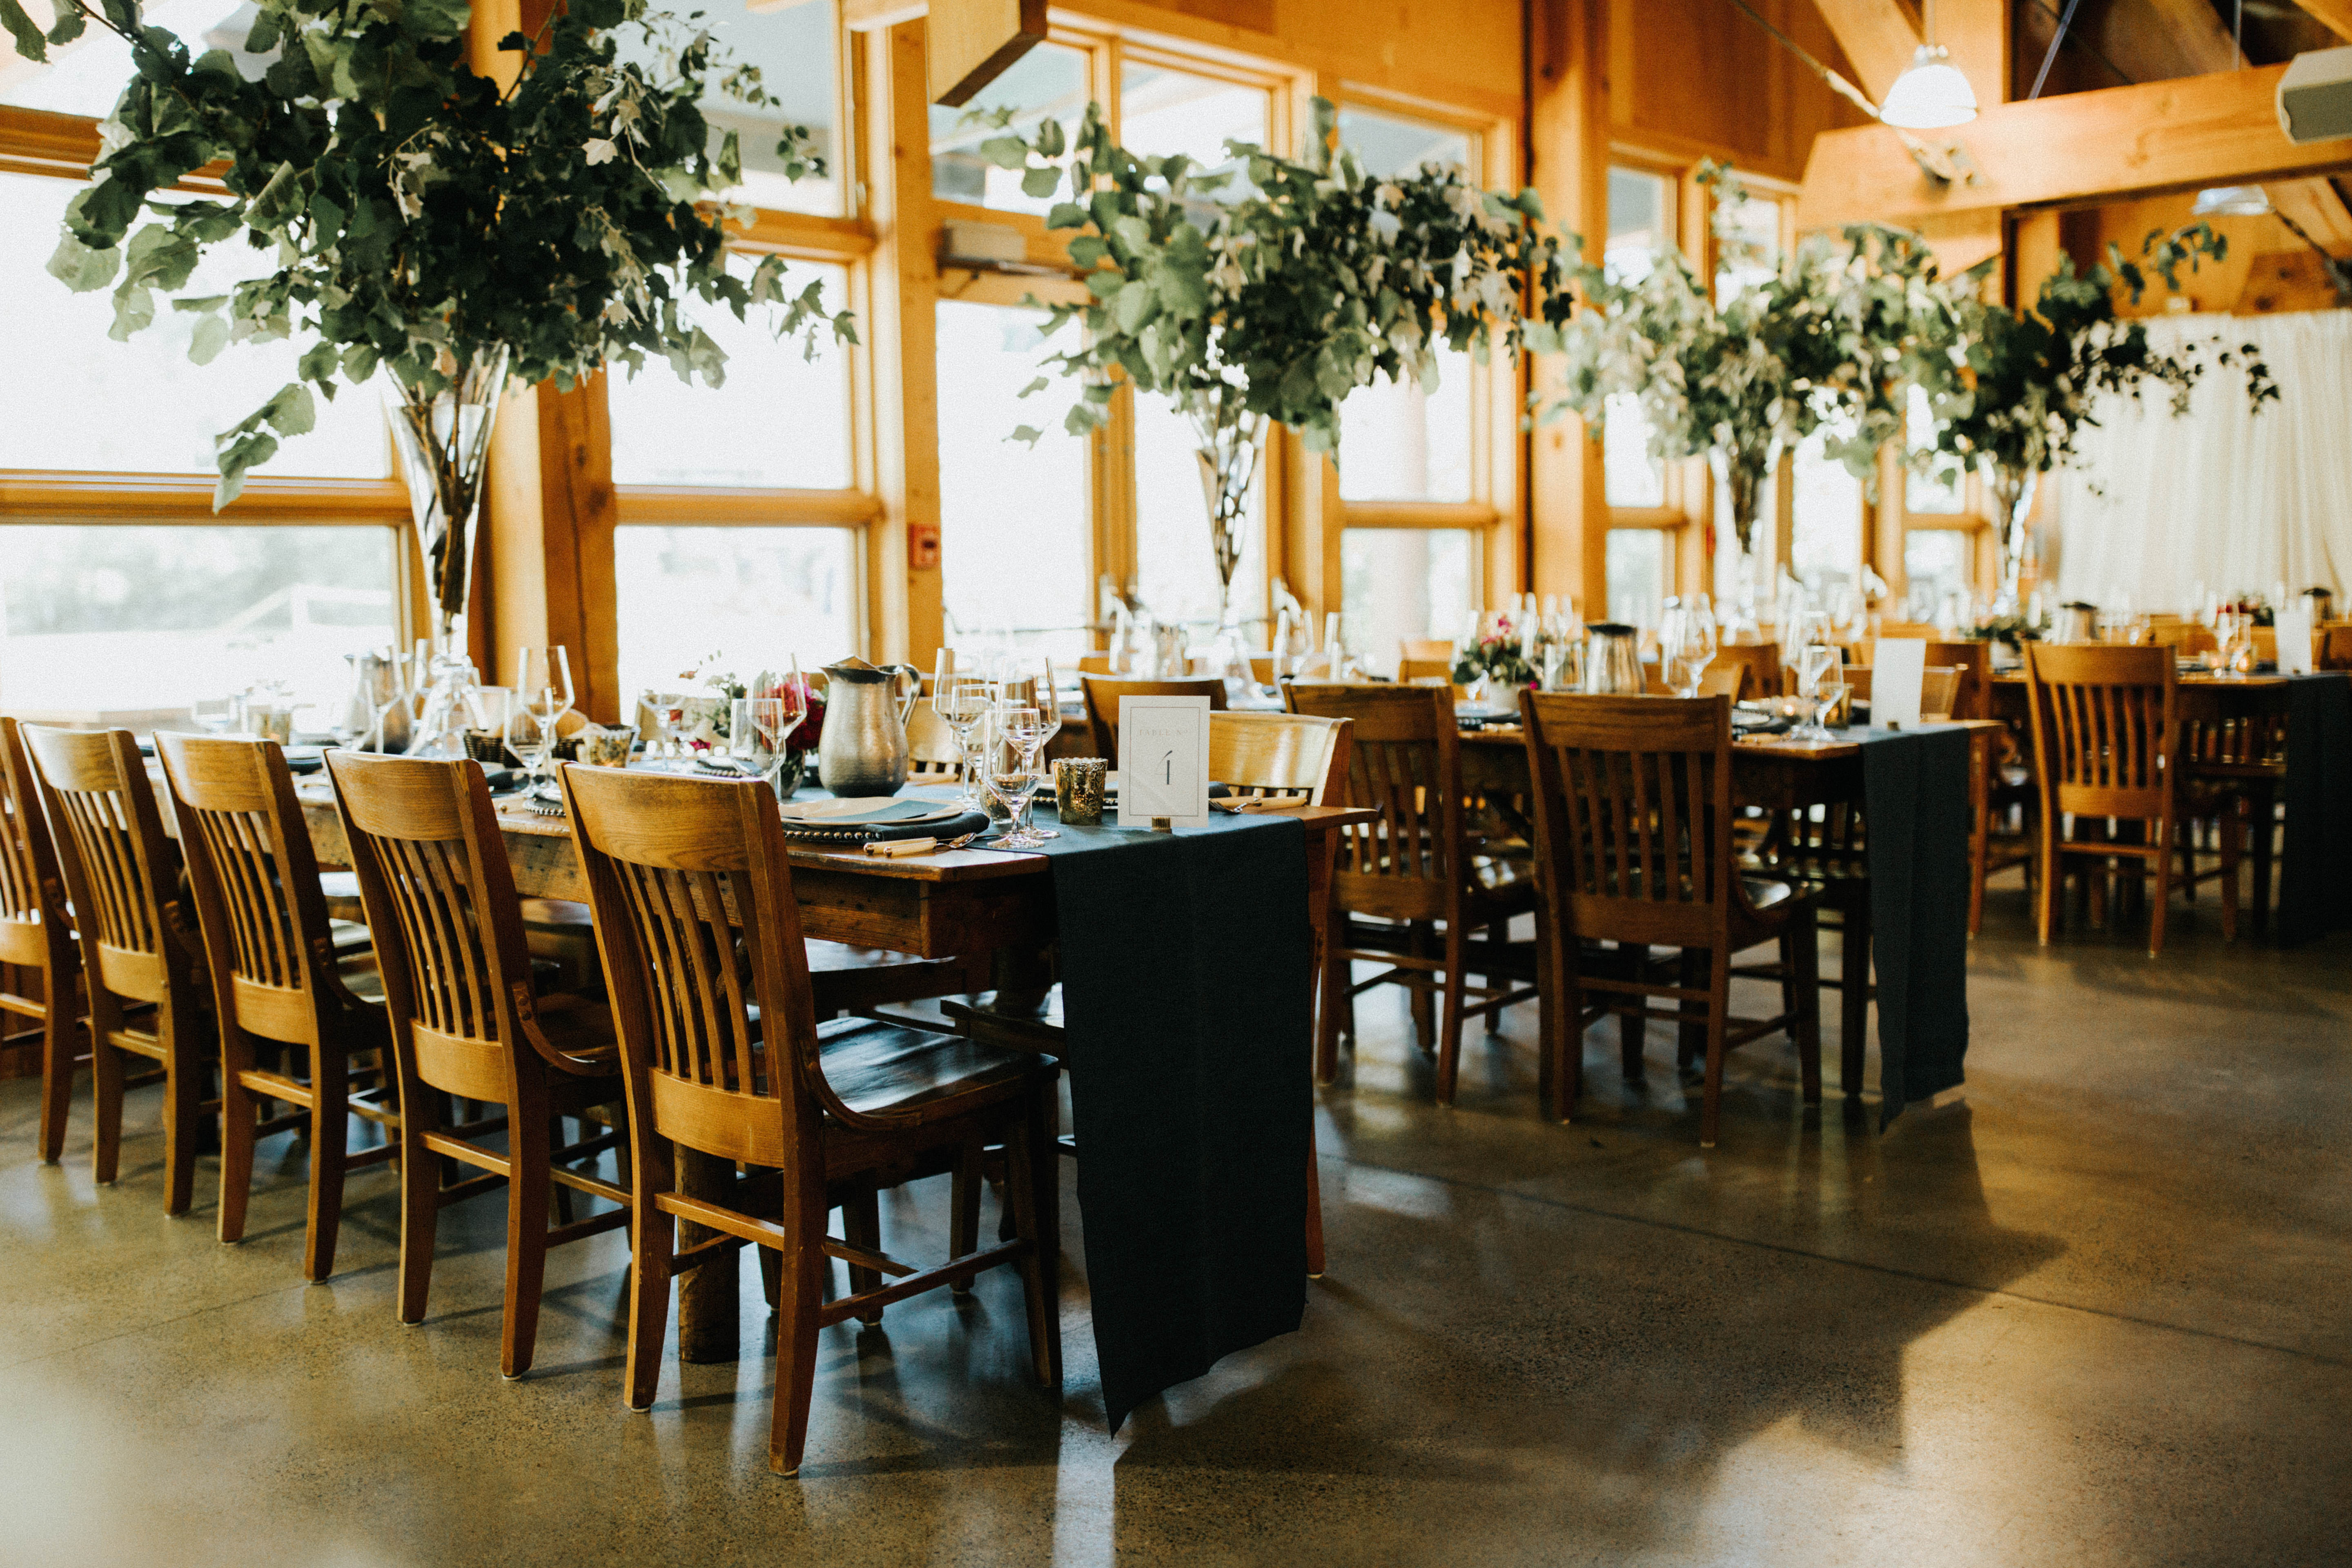 [Image description: a photo of the Dining Hall at IslandWood. Three long tables are sewt with chairs and table settings. There are arrangements of greenery and florals above each table. Sunlight is streaming in from the windows behind the tables.]